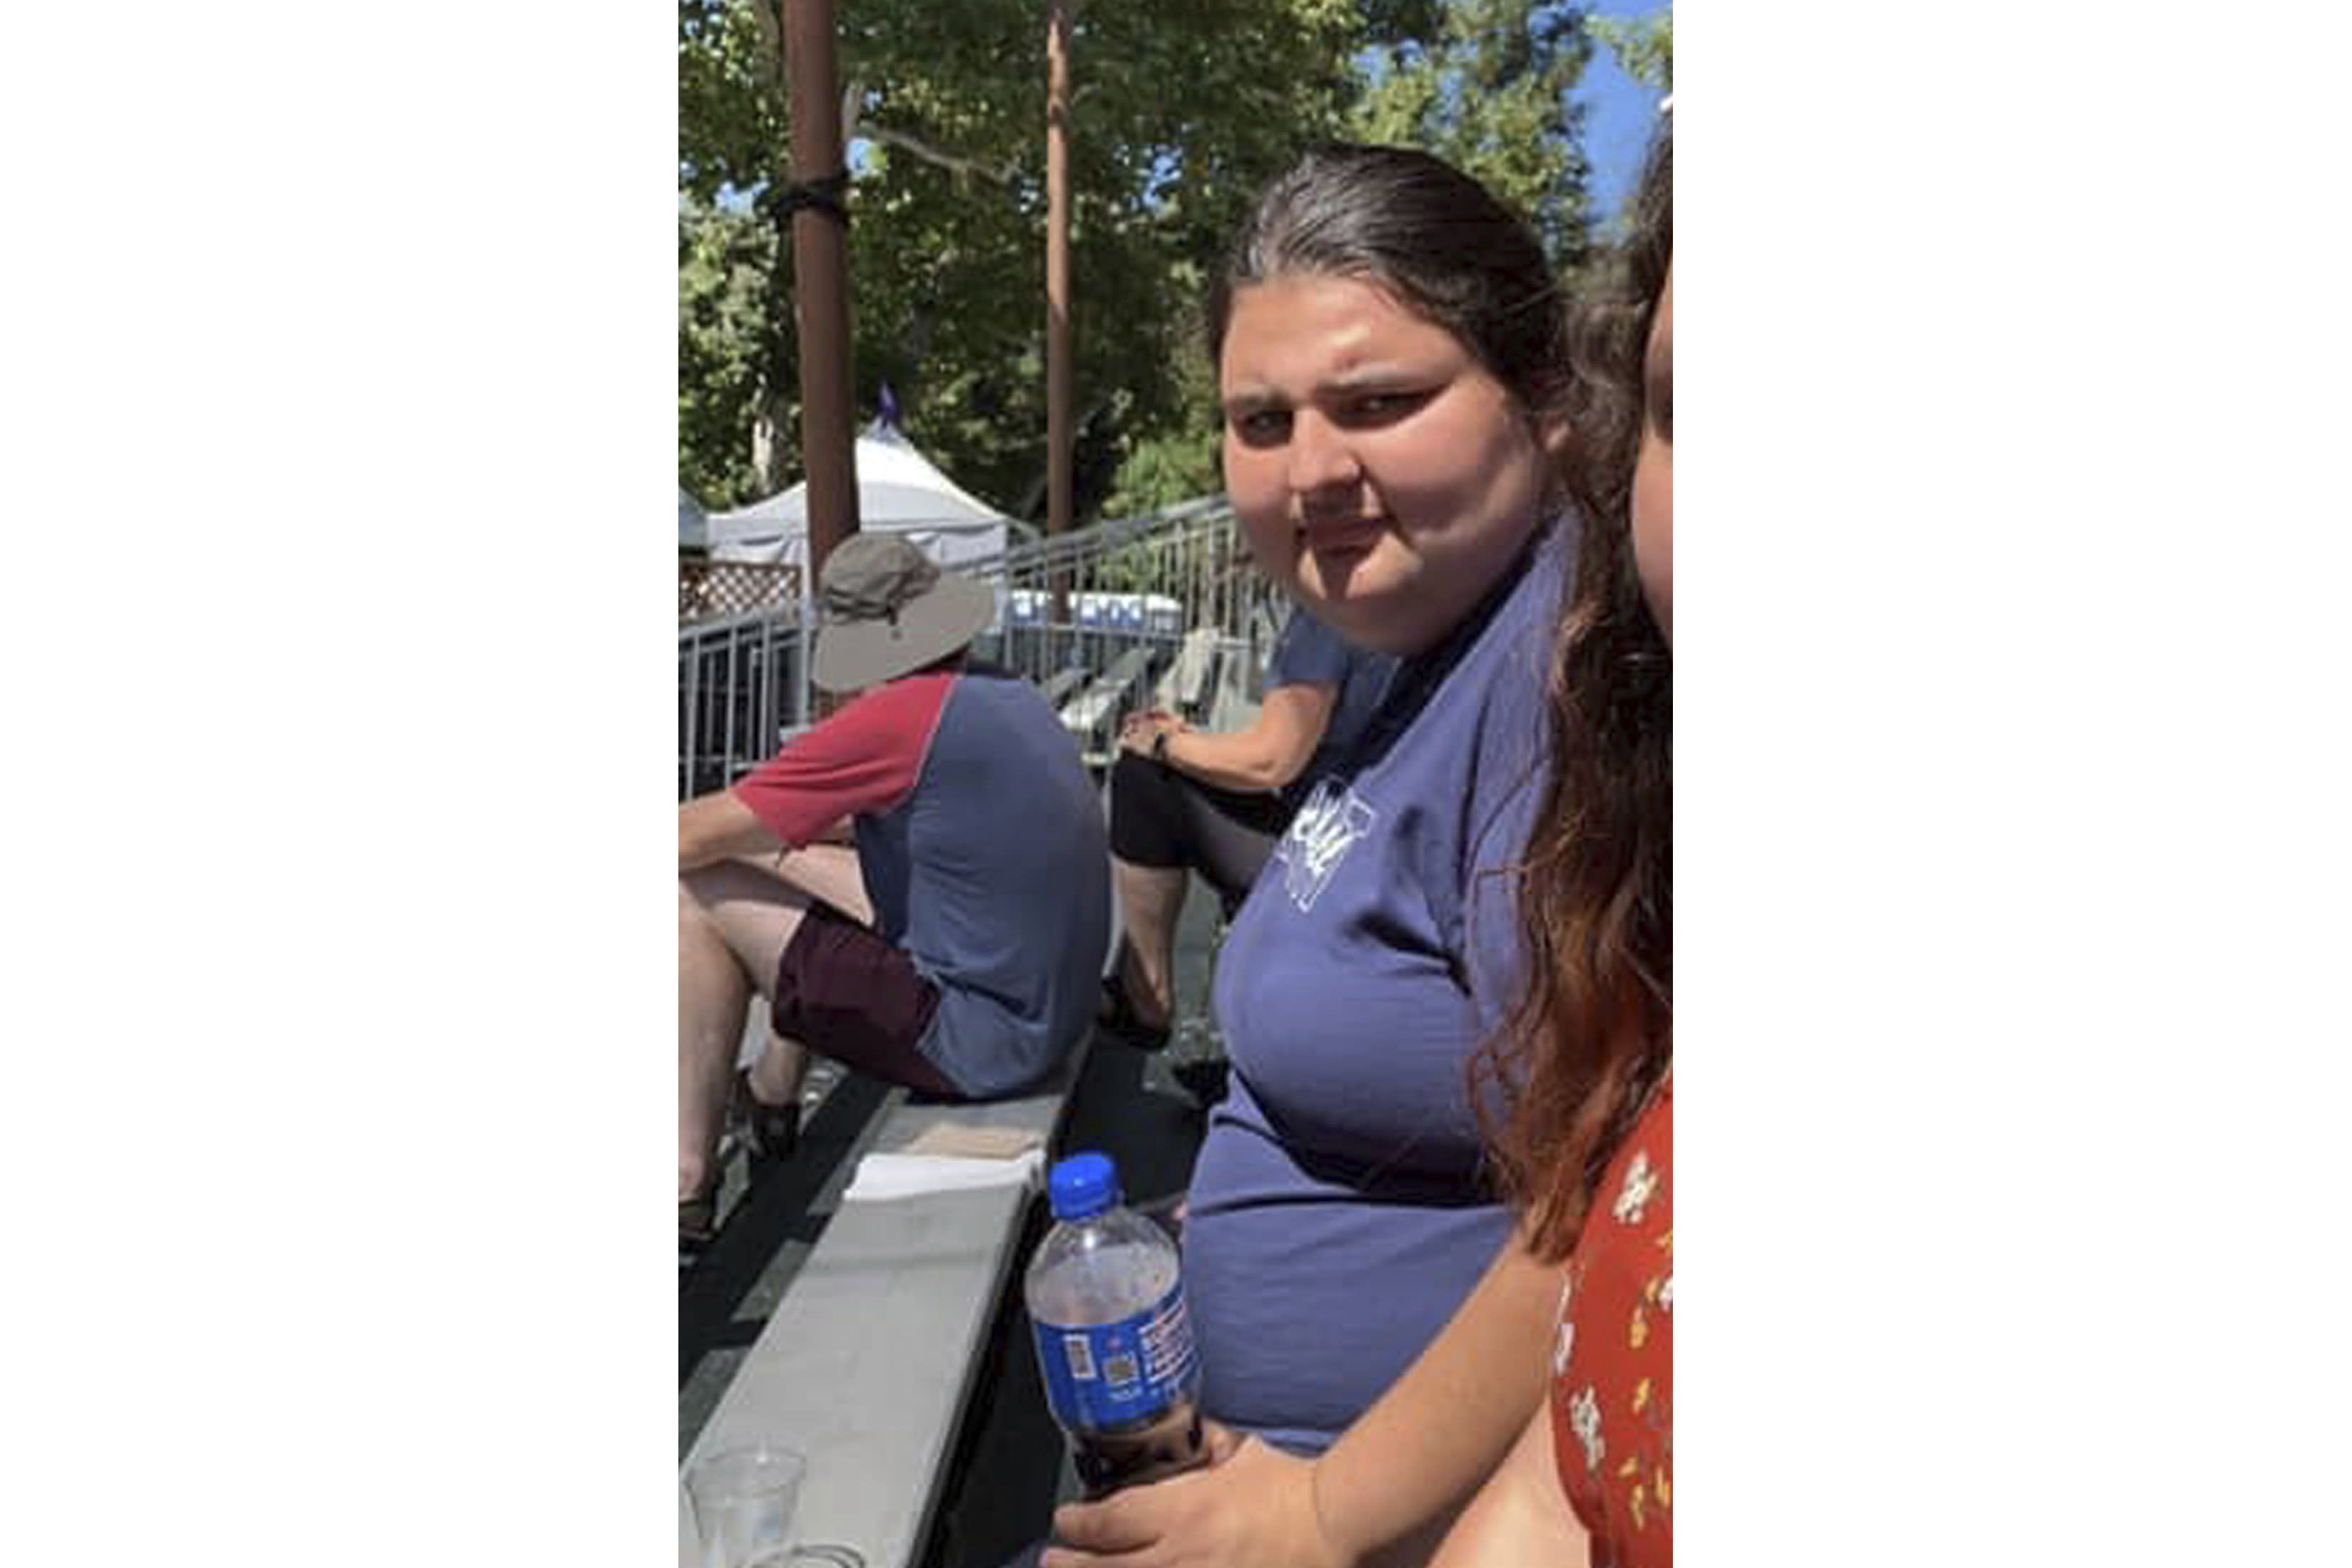 'Target list' prompts domestic terrorism case in Gilroy garlic festival shooting